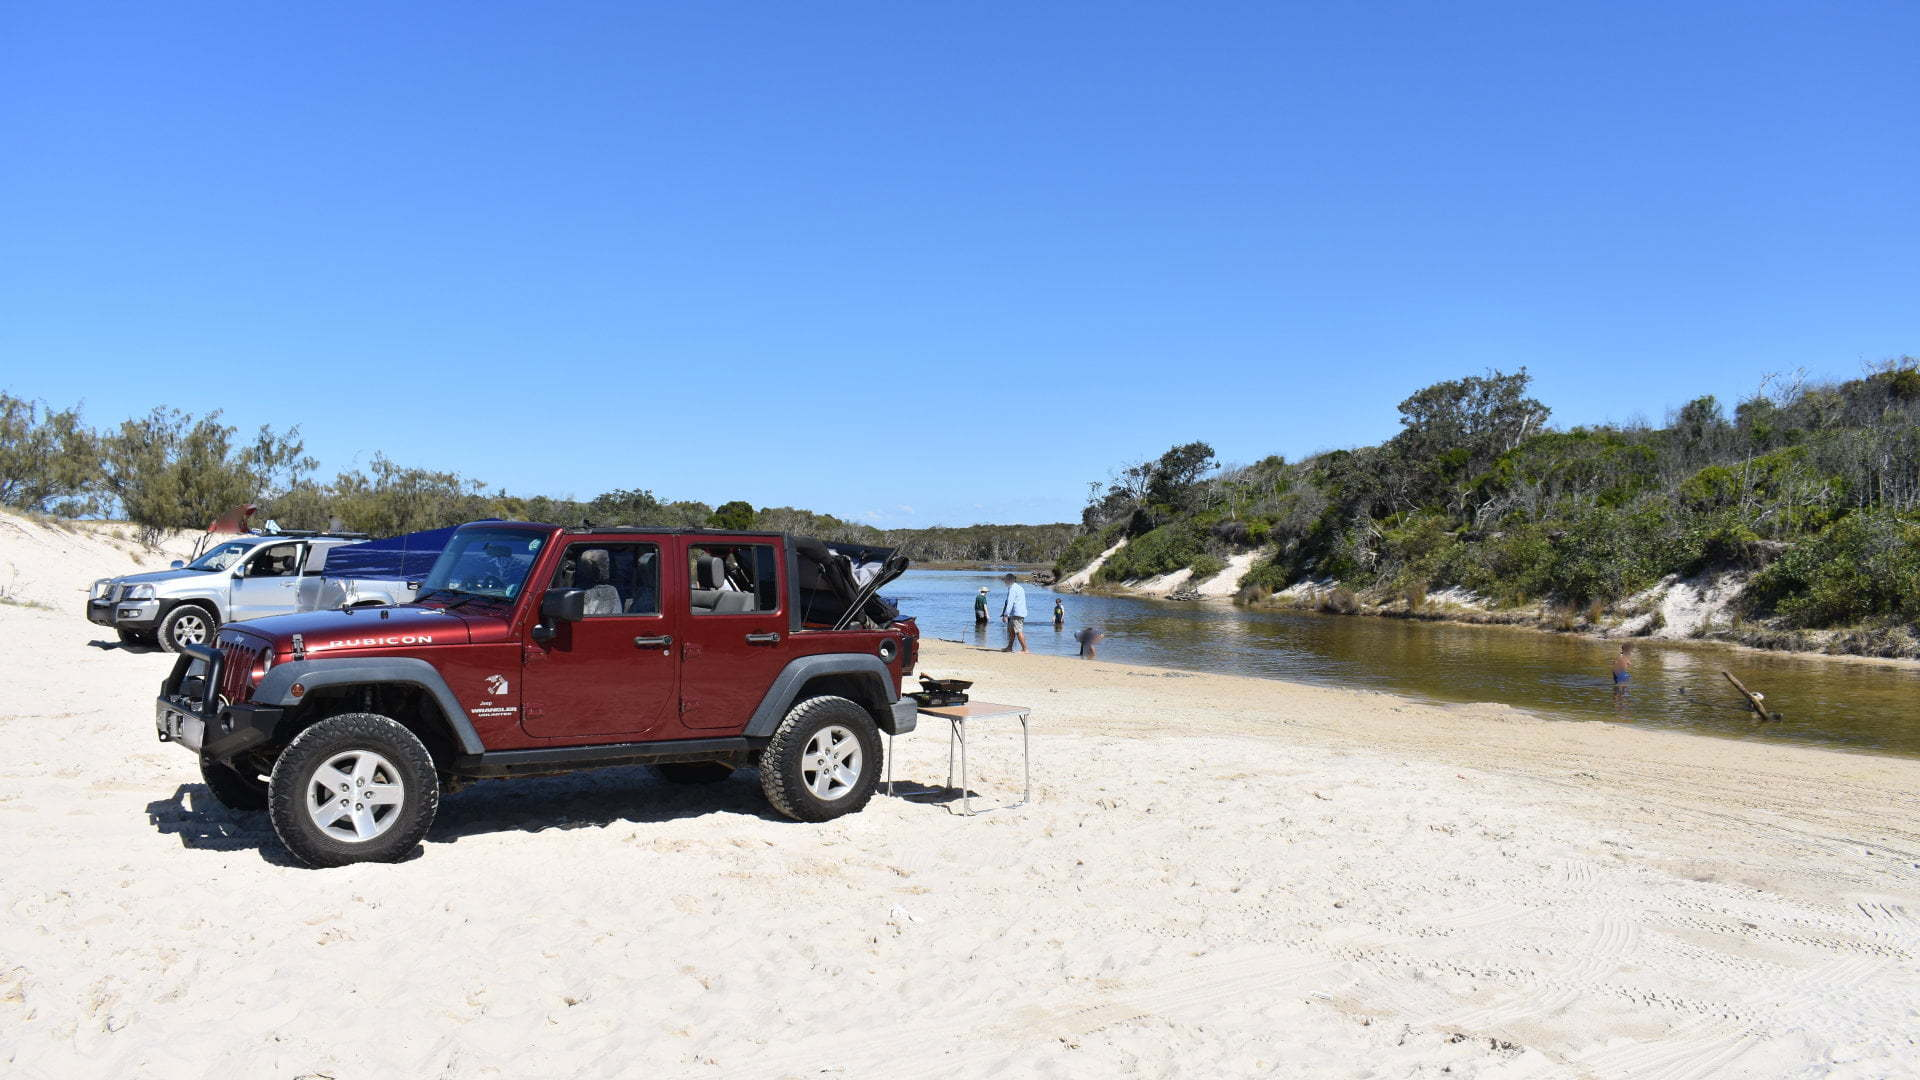 Jeep at the beach, at the Second Lagoon, also known as Norfolk Lagoon, on Ocean Beach Bribie Island